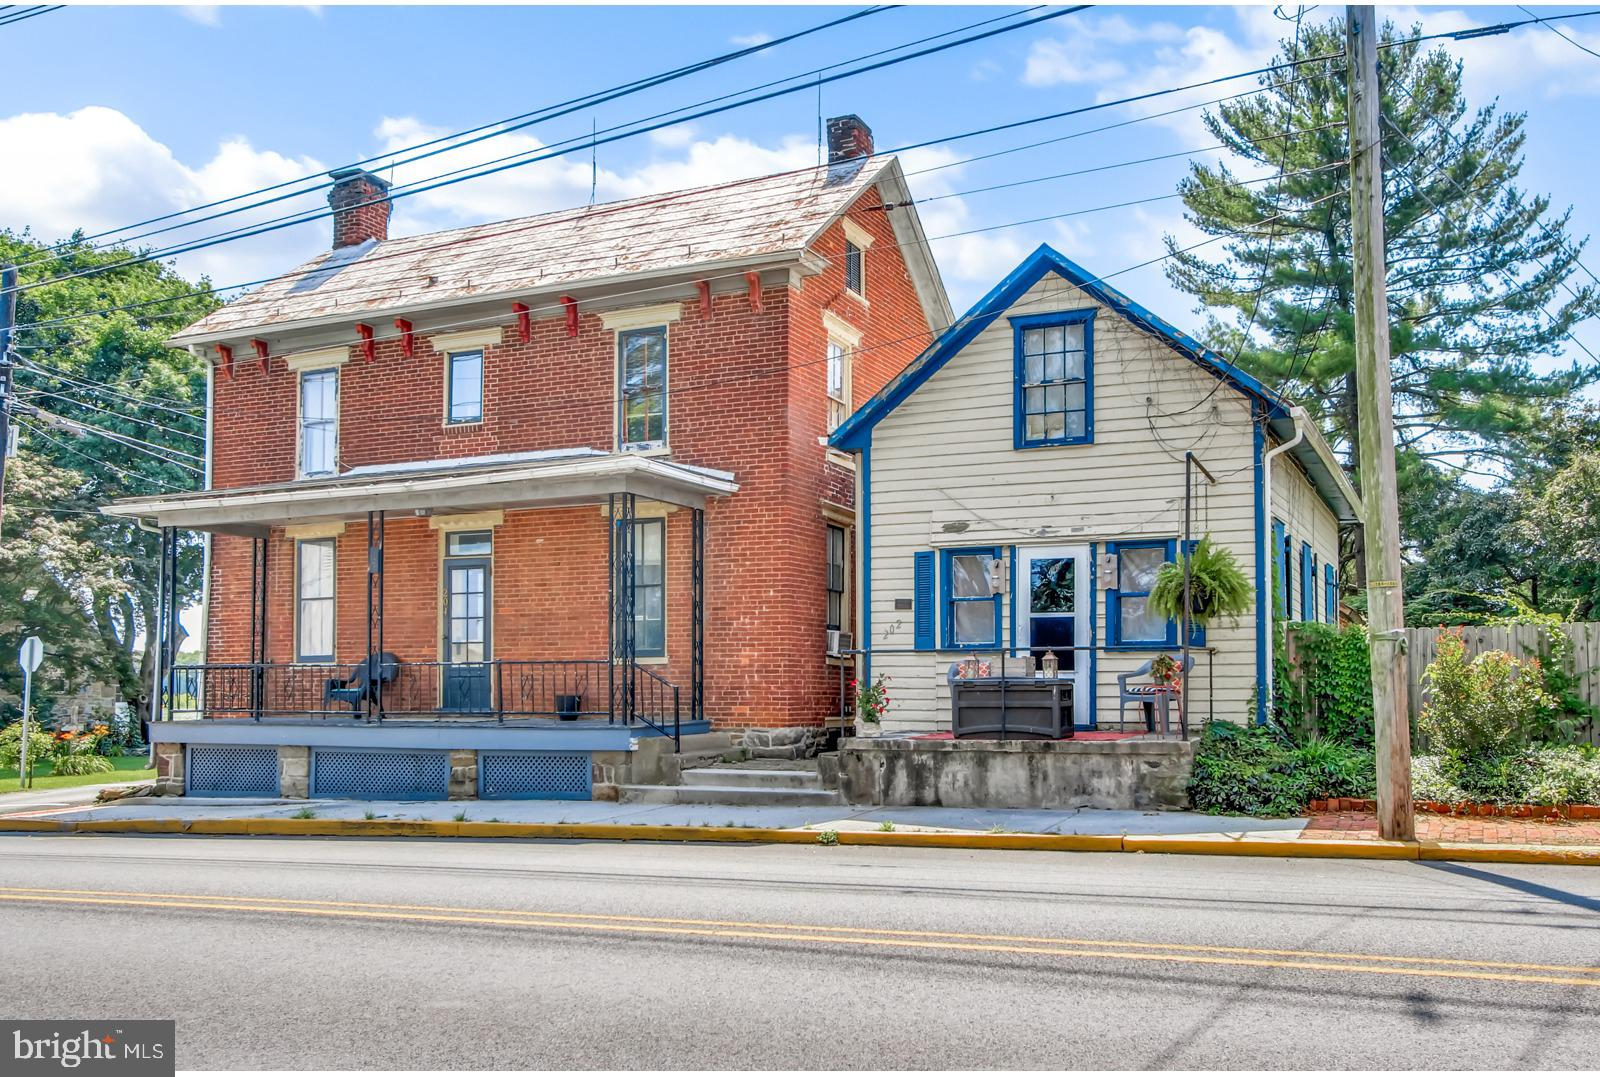 202 E MAIN STREET, FAIRFIELD, PA 17320